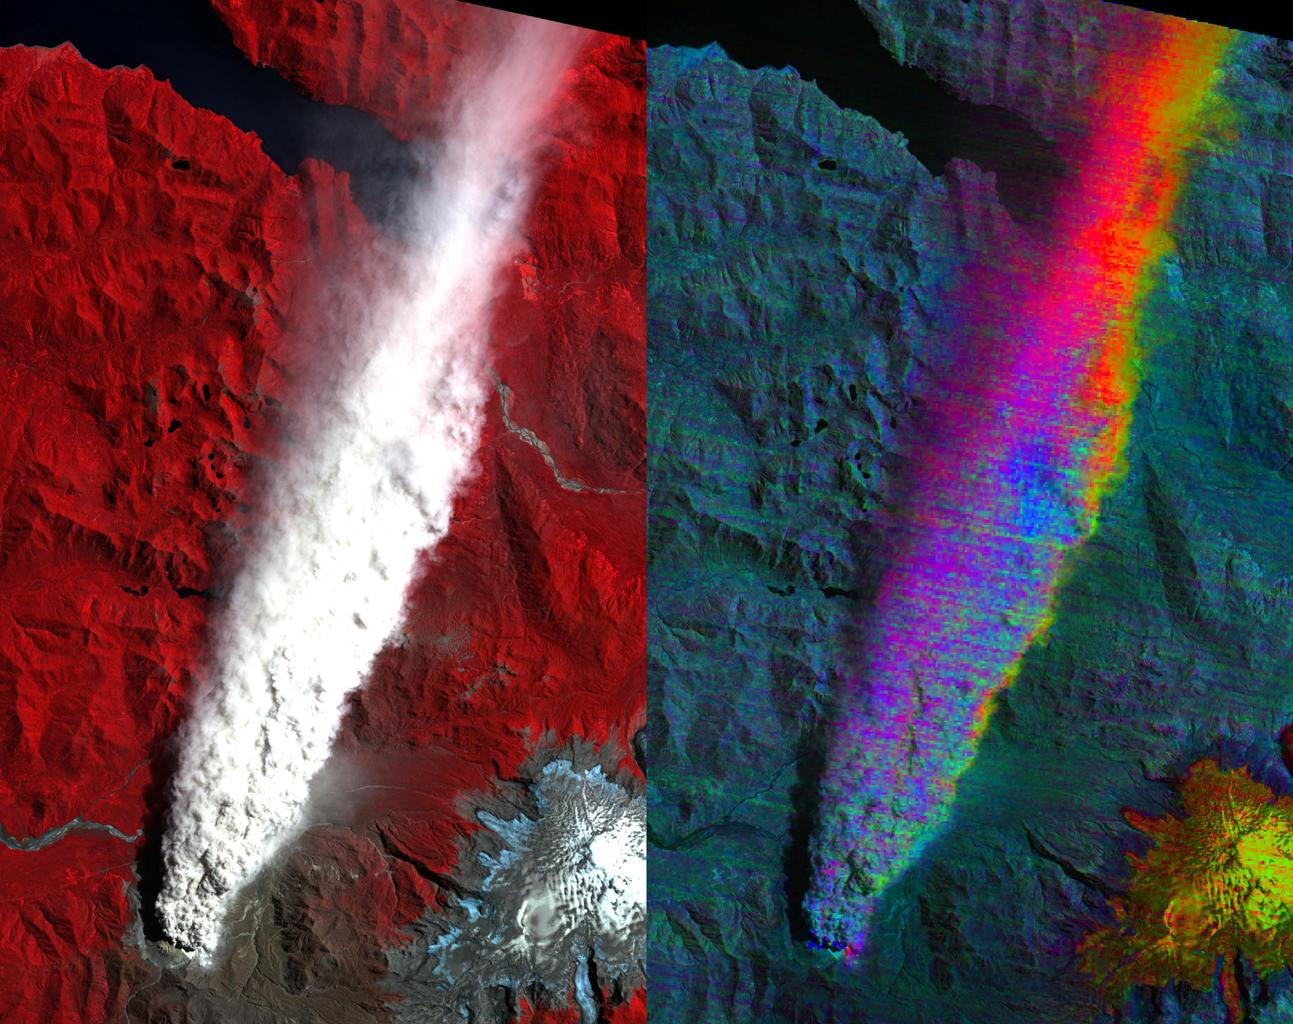 Chaiten Volcano, Chile continues to erupt after first exploding in May 2008 following about 9,000 years of inactivity. This image from NASA's Terra spacecraft shows vegetation in red. You can clearly see the extent of the plume.